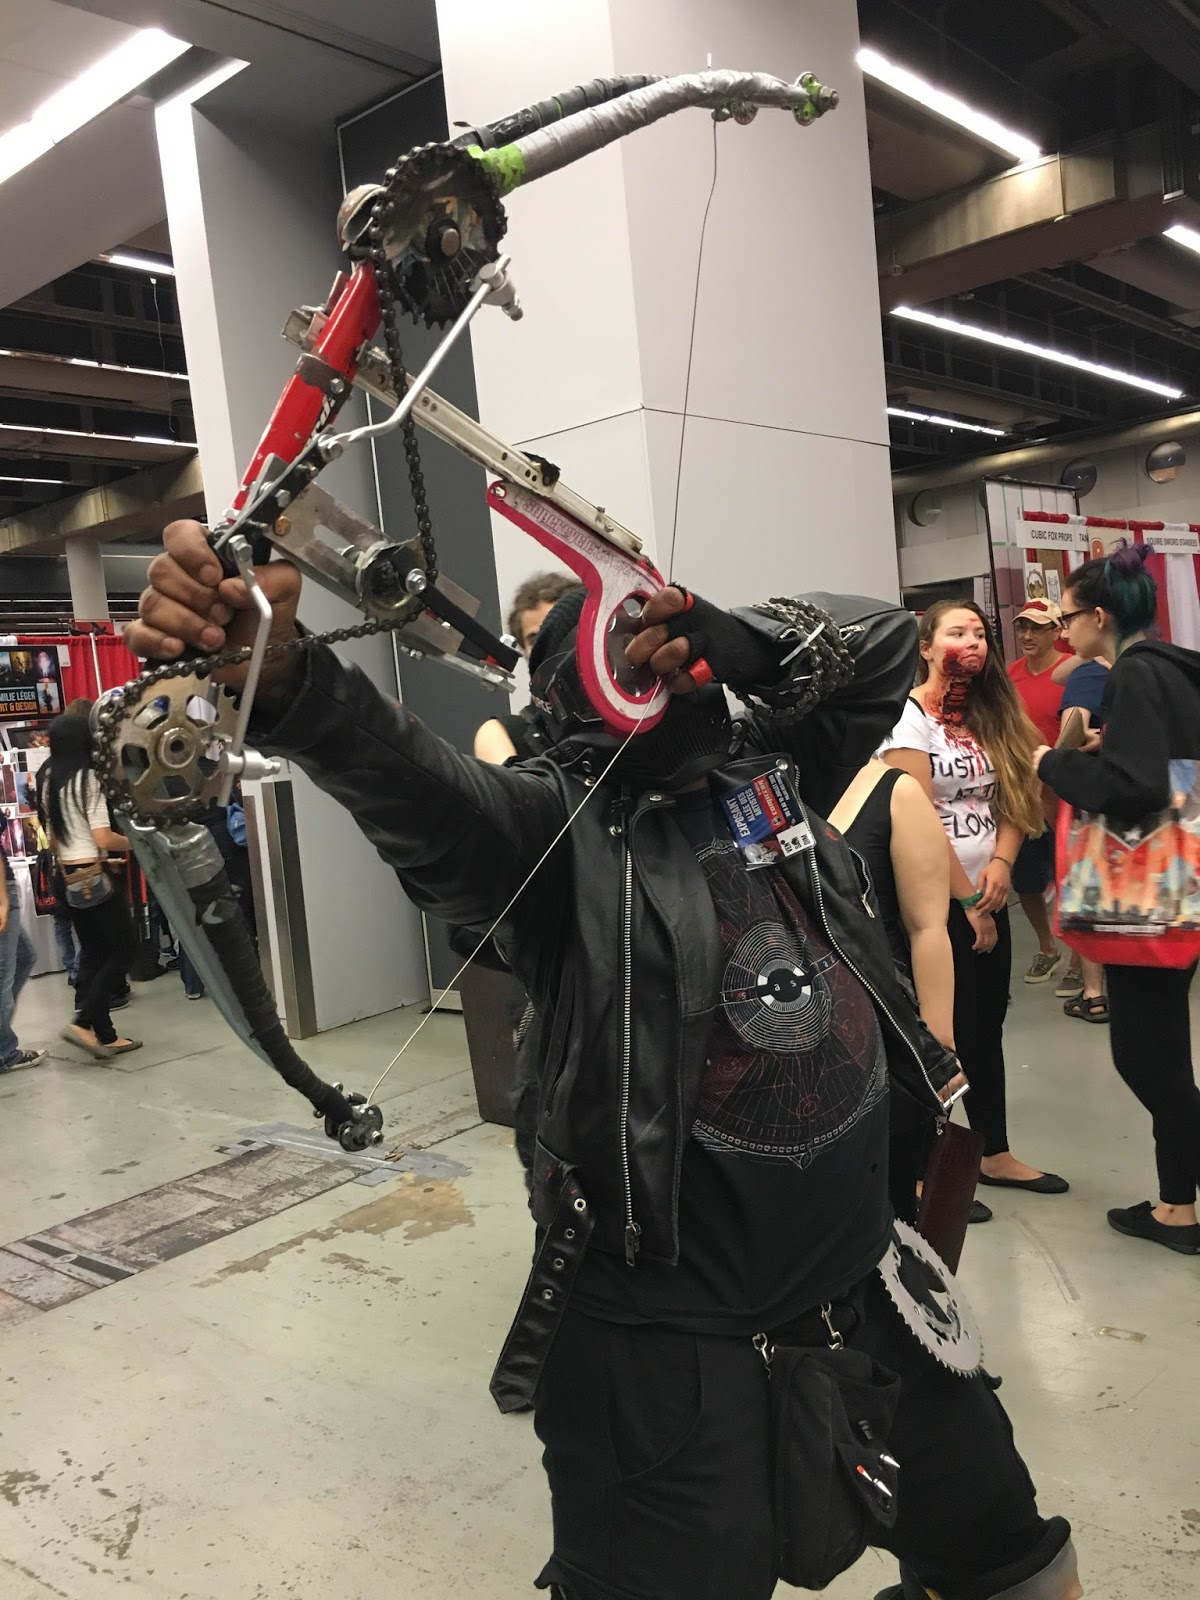 The amazing bow weapon